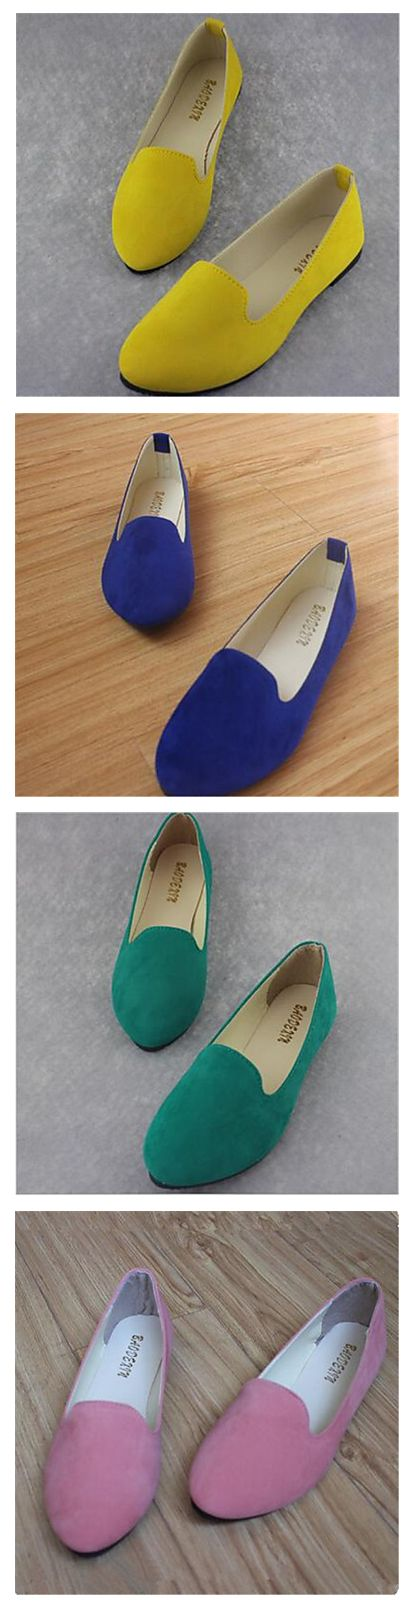 There is never too many shoes))) Get the color that matches your clothes or get a few of them - it's €9.67 anyways. Casual light women flats in green, orange, red, black, green, blue, yellow colors.